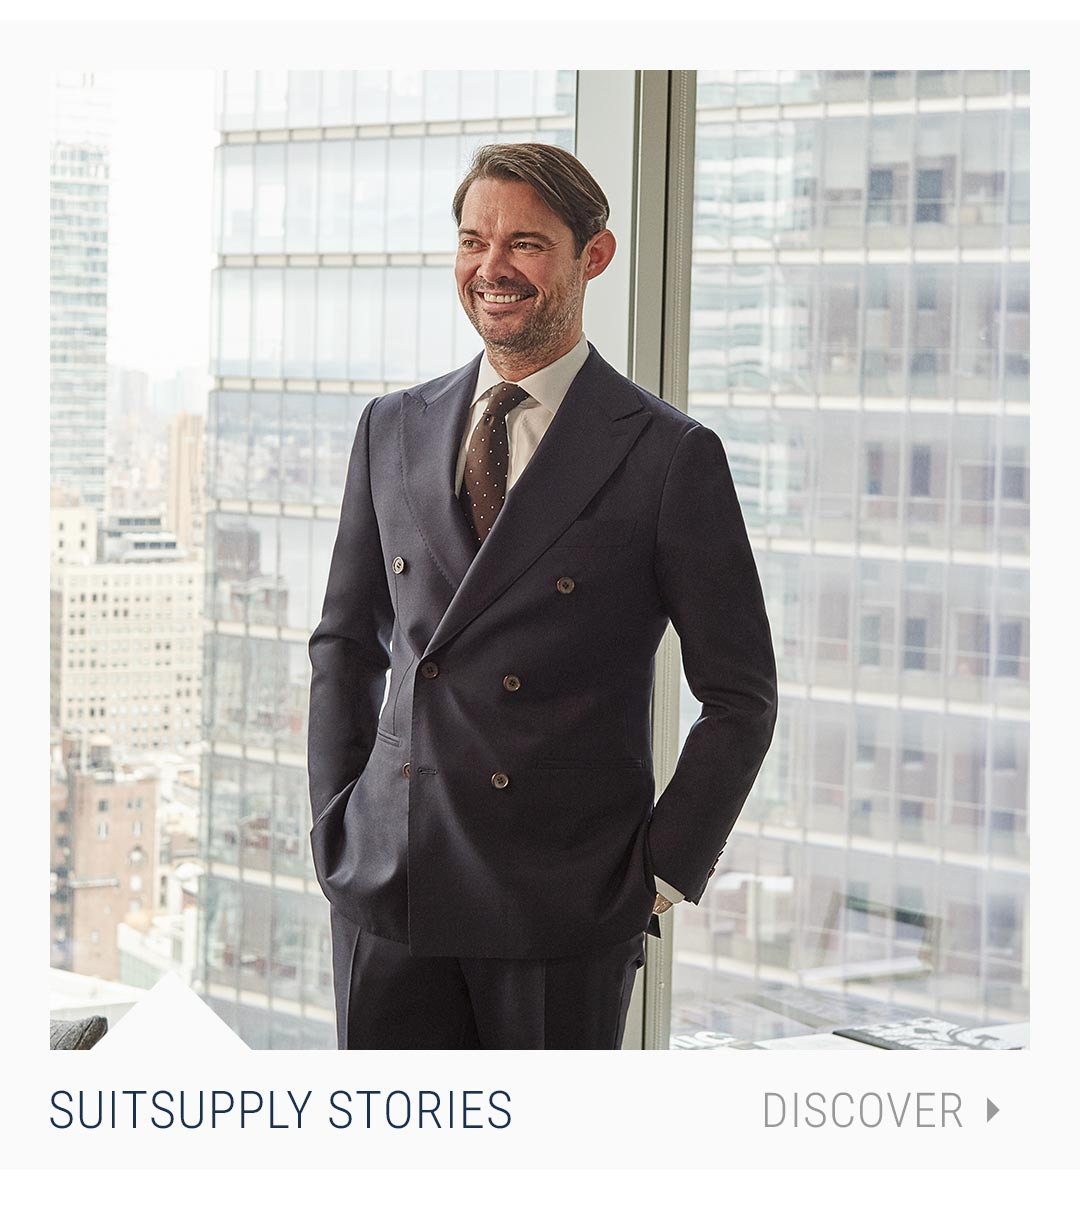 Suitsupply stories